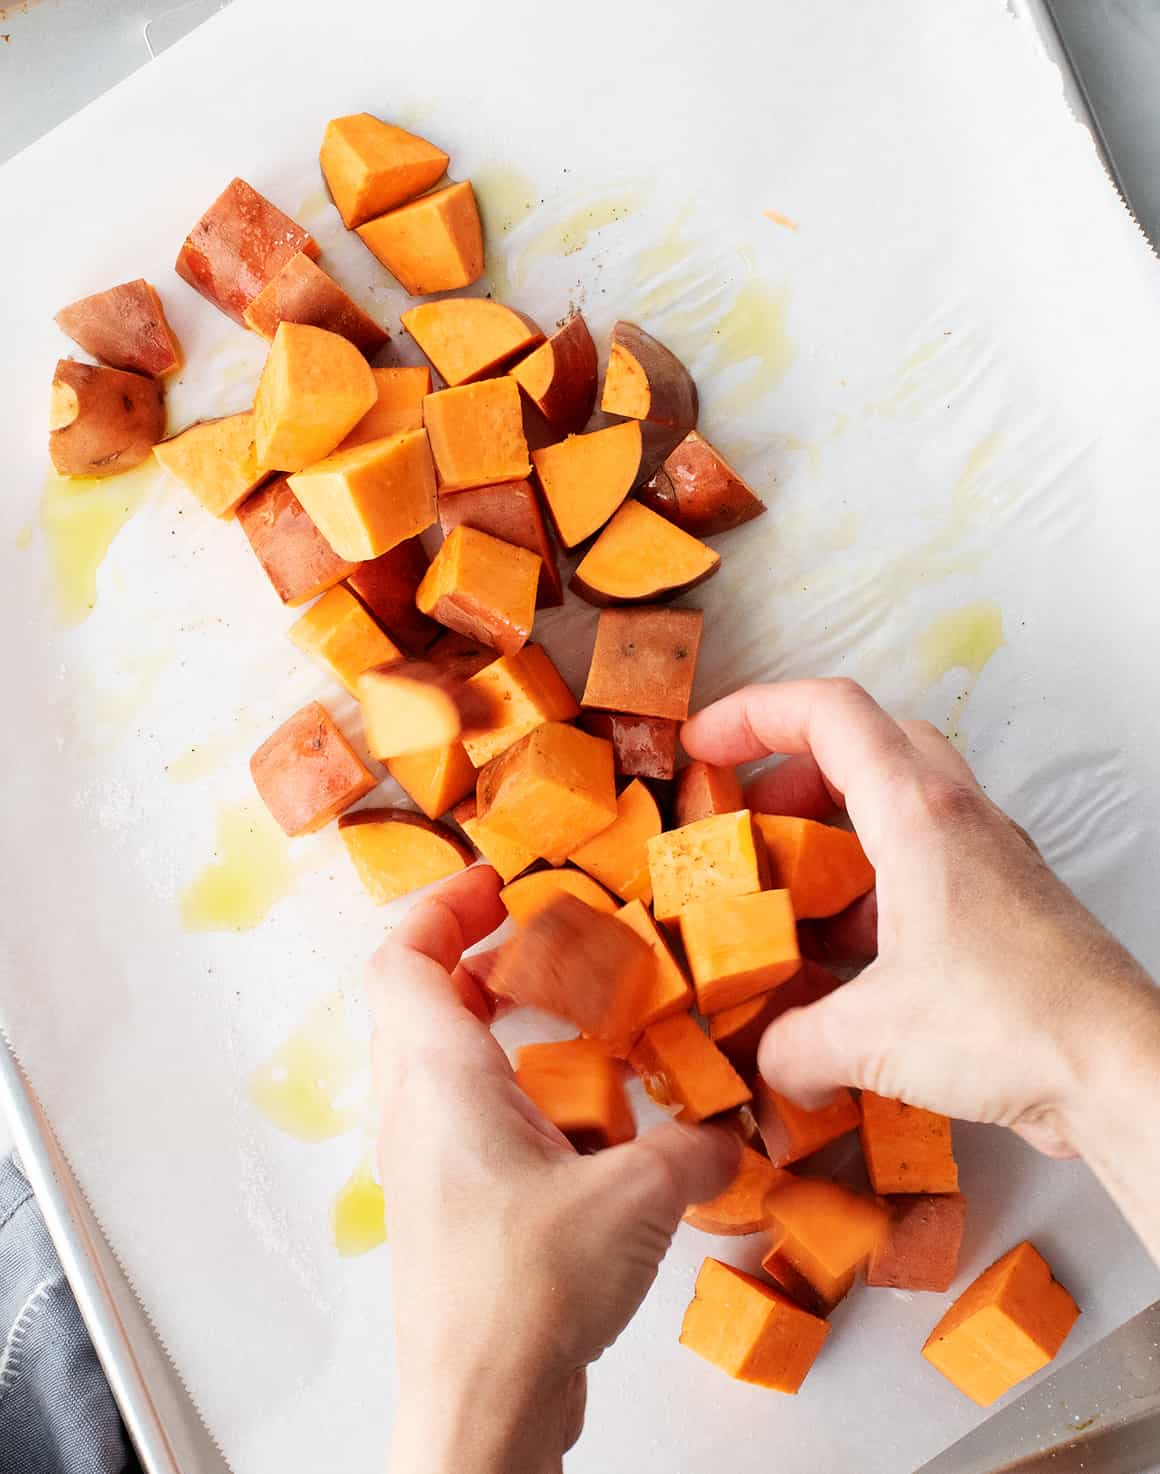 Hands tossing sweet potatoes with oil on a baking sheet